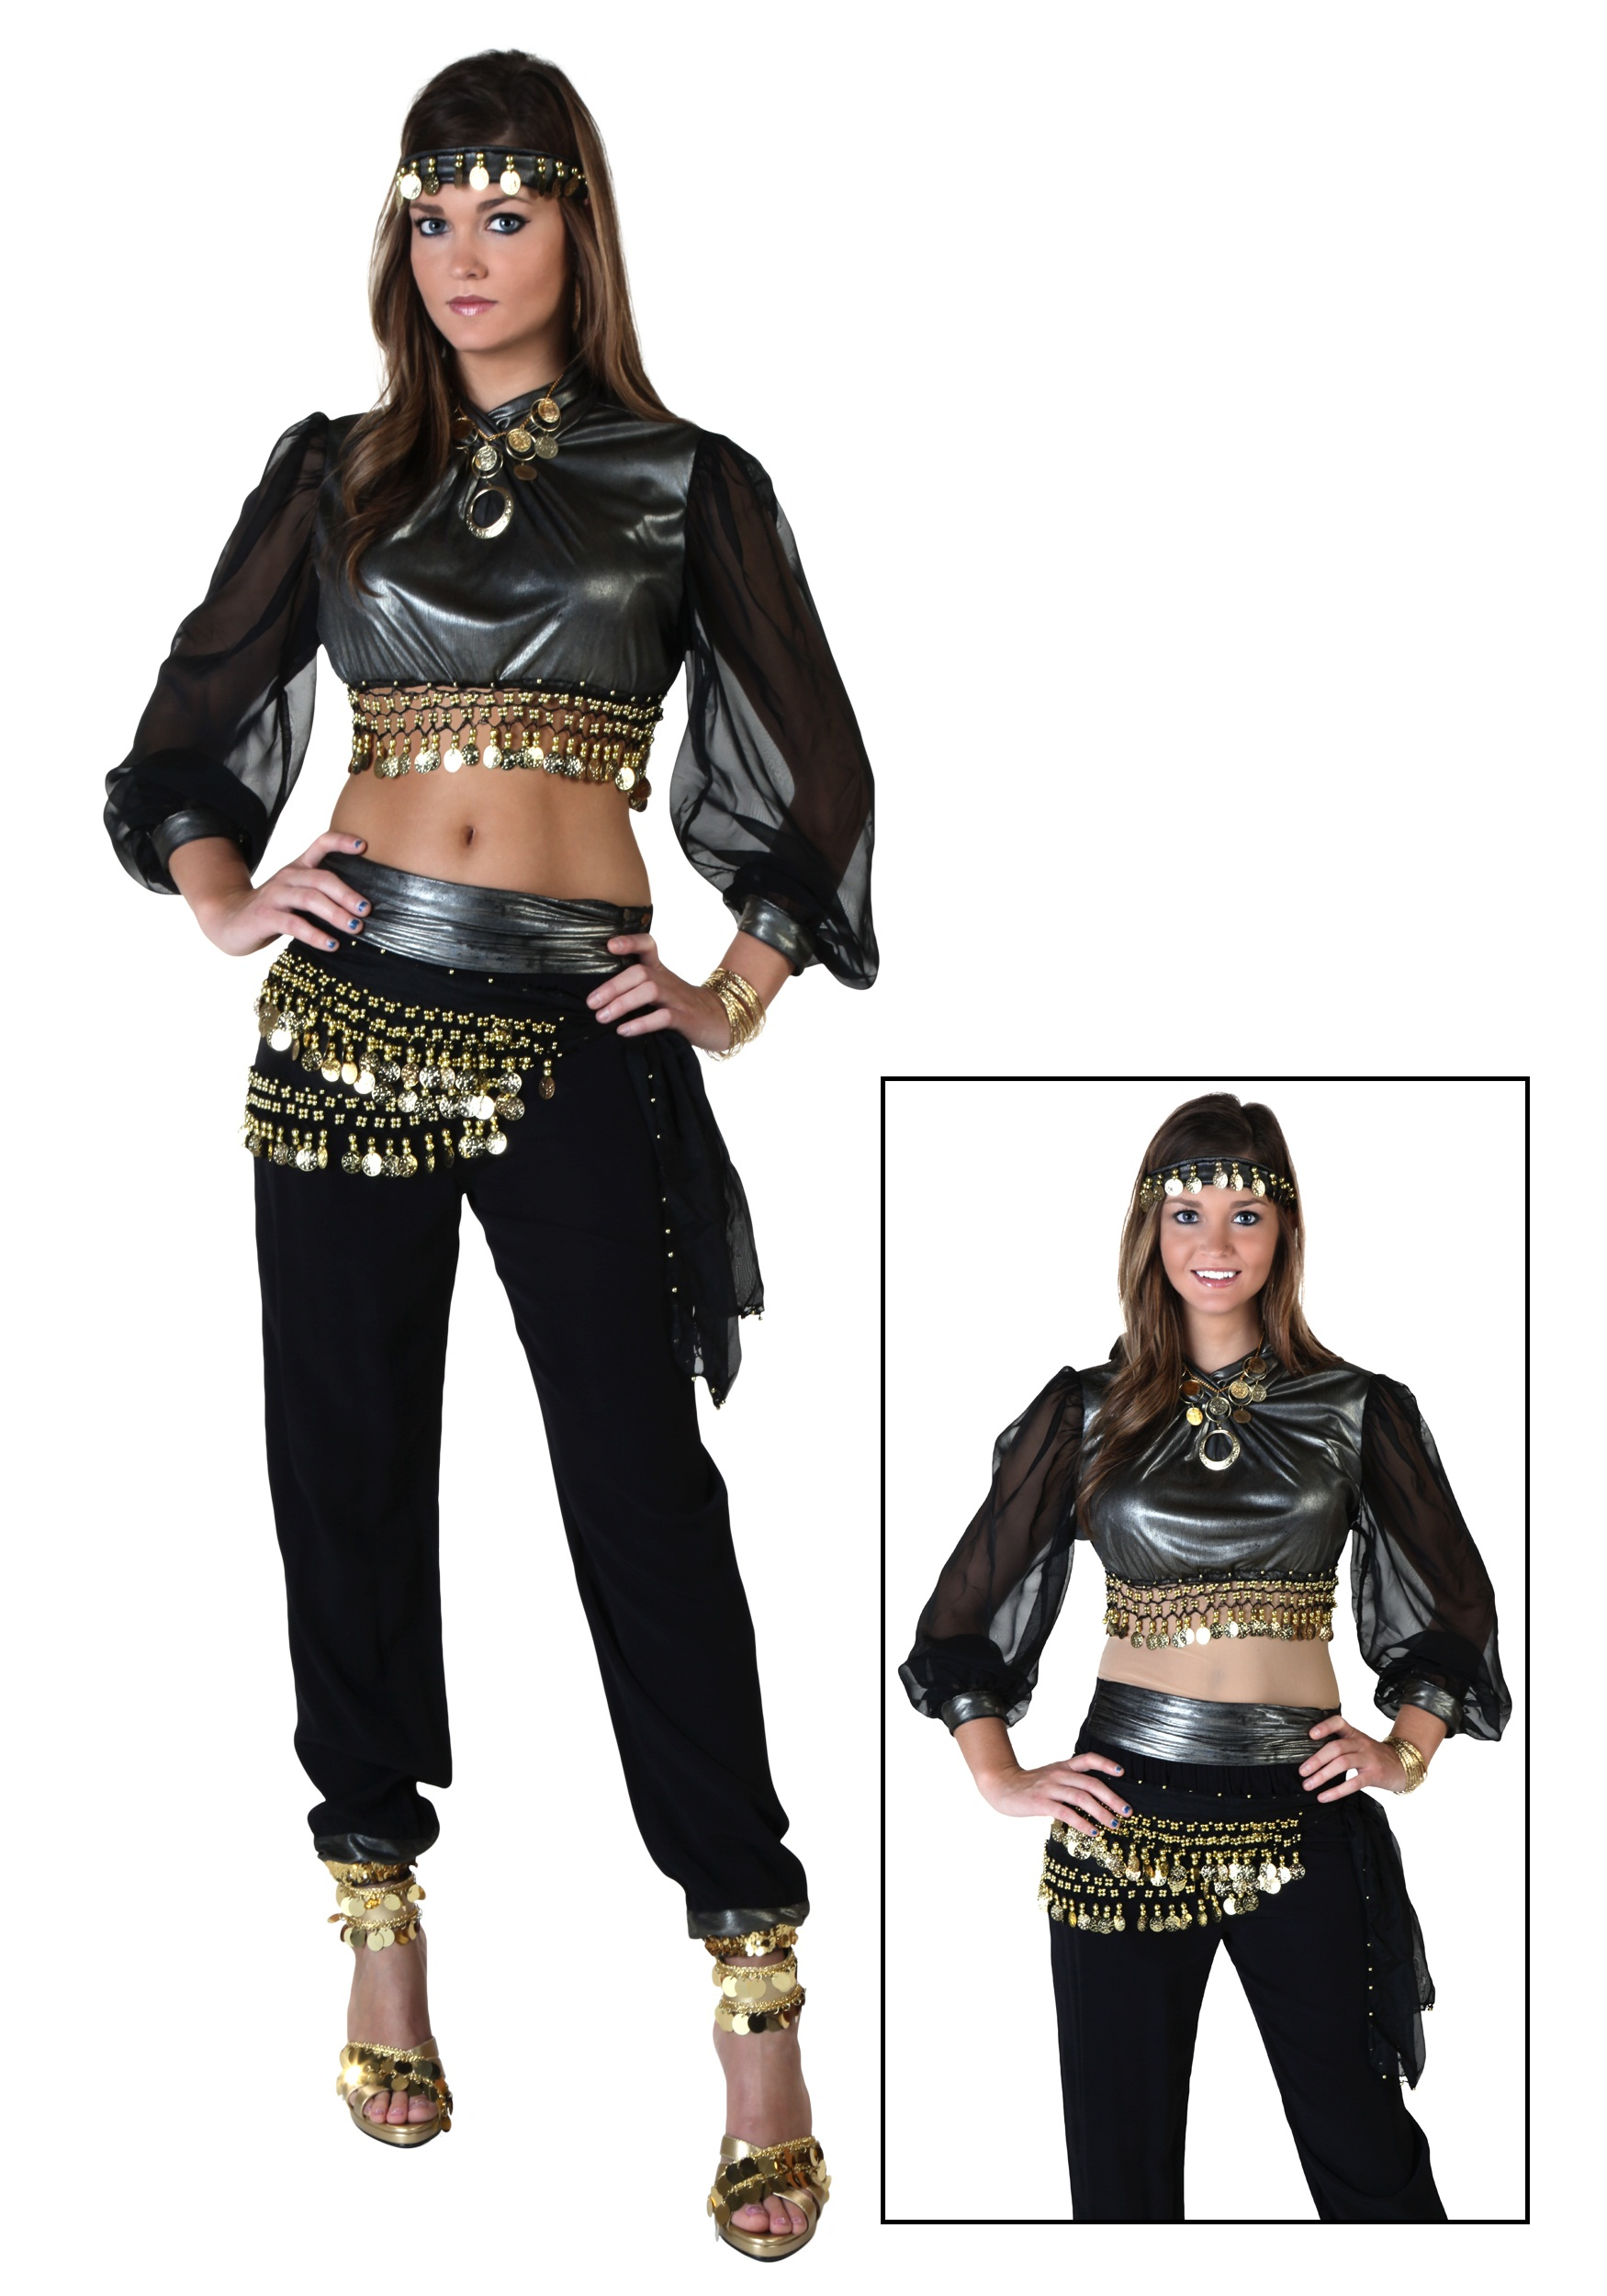 725de23db6a1a Black and Silver Belly Dancer Costume - Renaissance Costumes